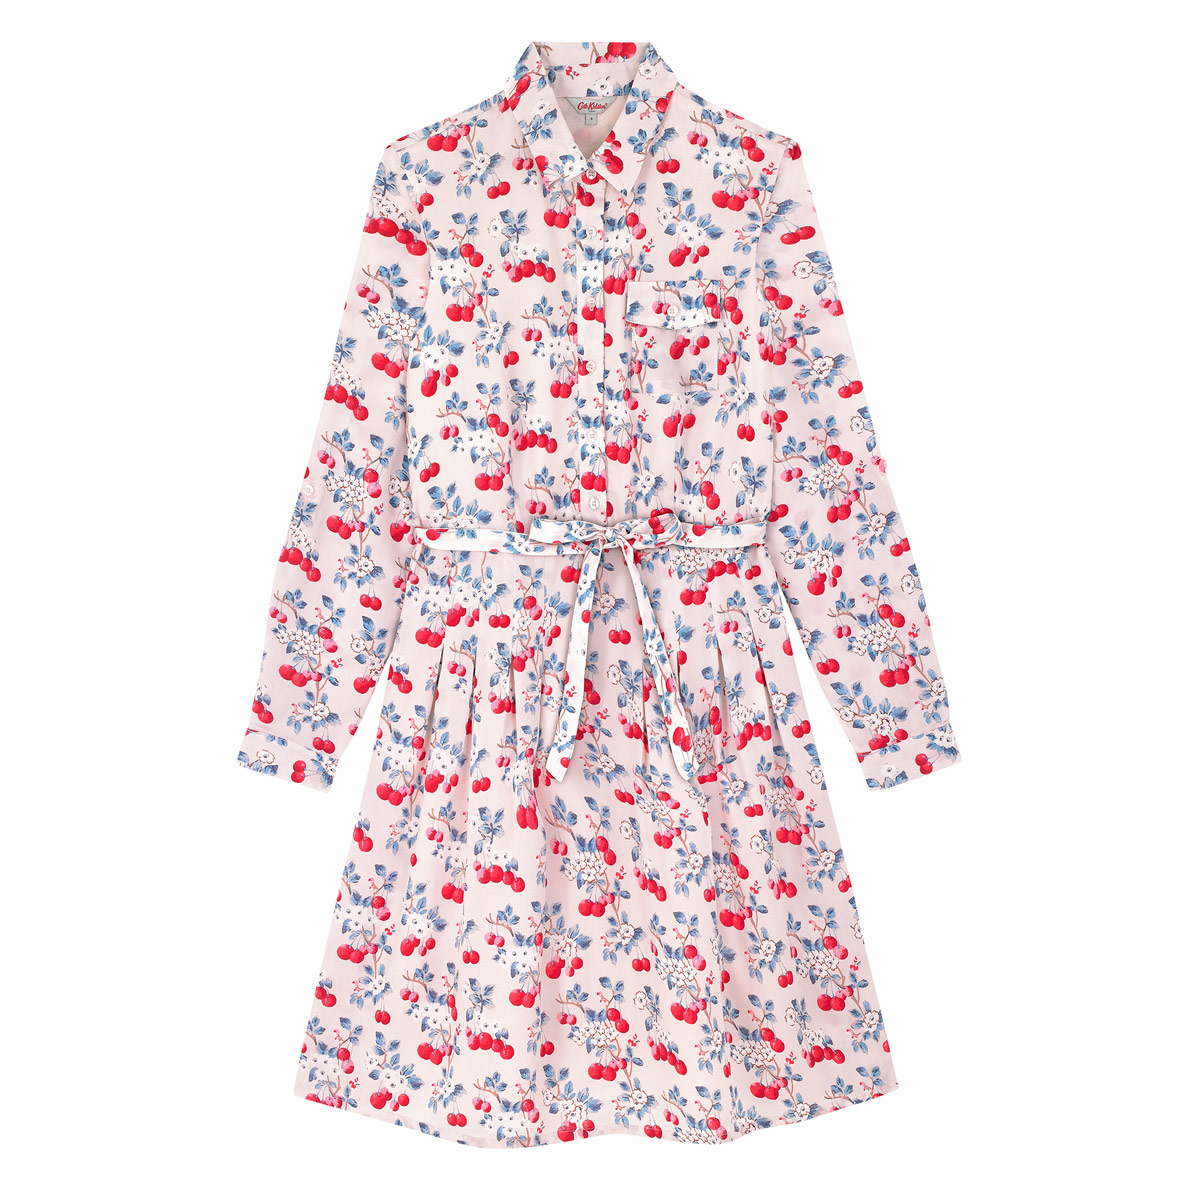 CHERRY SPRIG SHIRT DRESS - This sweet dress is printed with Cath Kidston fresh and fruity Cherry Sprig design. The shirt style bodice has a button front, neat little collar, breast pocket and long cuffed sleeves, and the gathered waist flares into a pleated skirt.